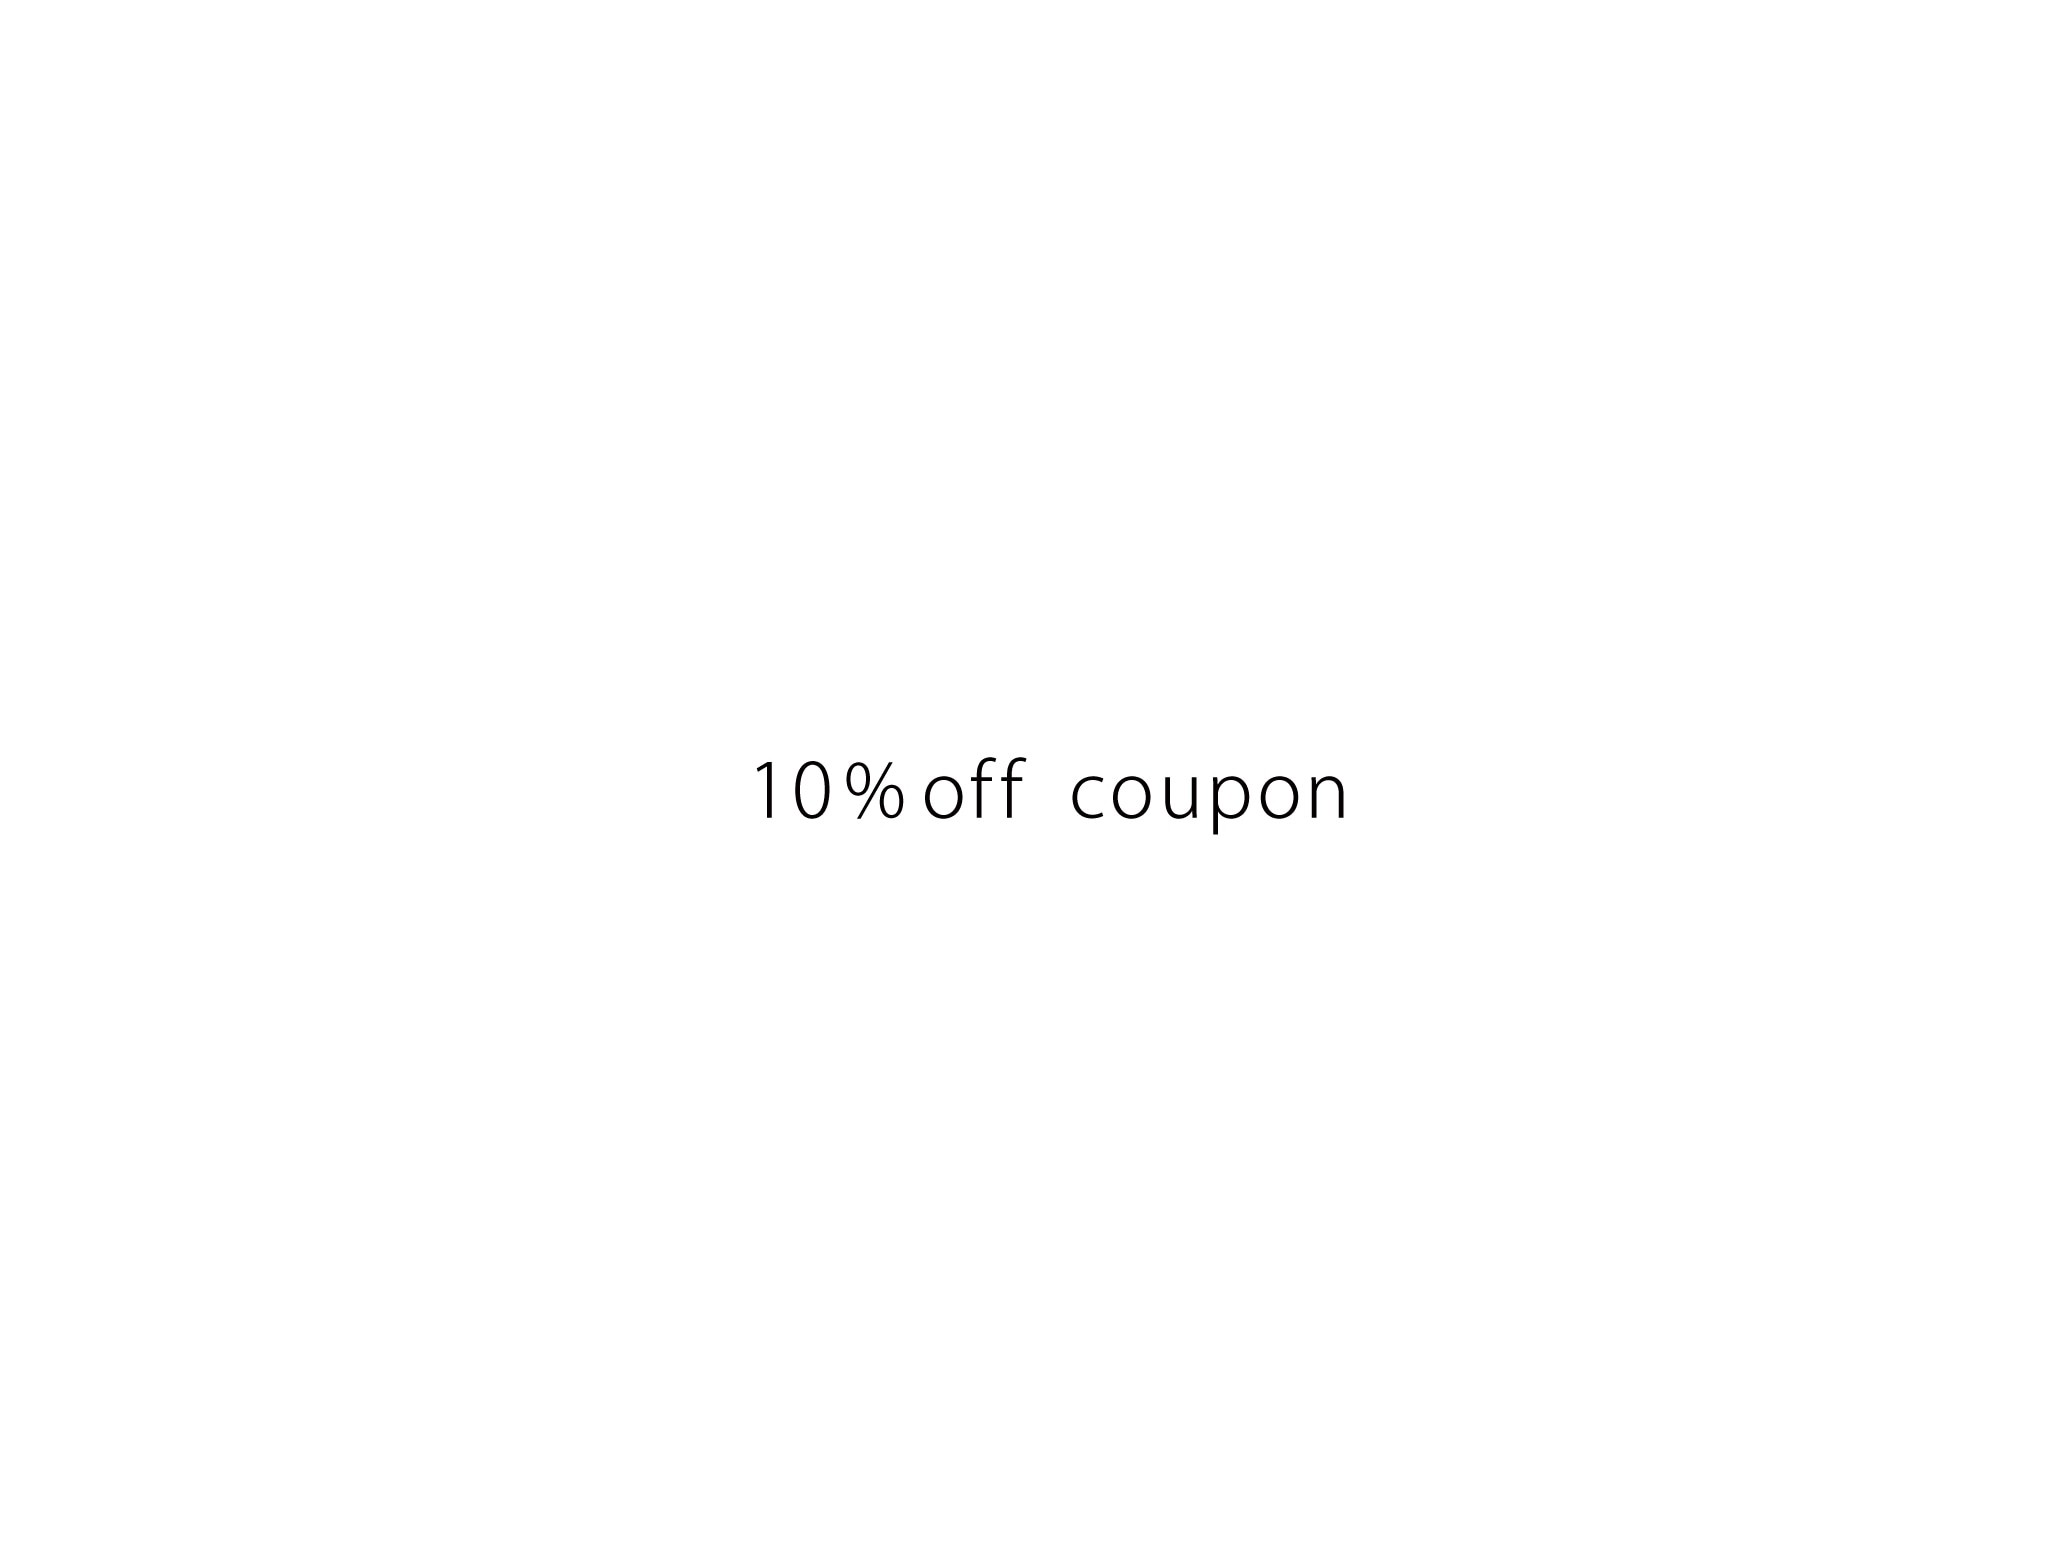 【 2020/5/18- 5/21 】10%off クーポンプレゼント!